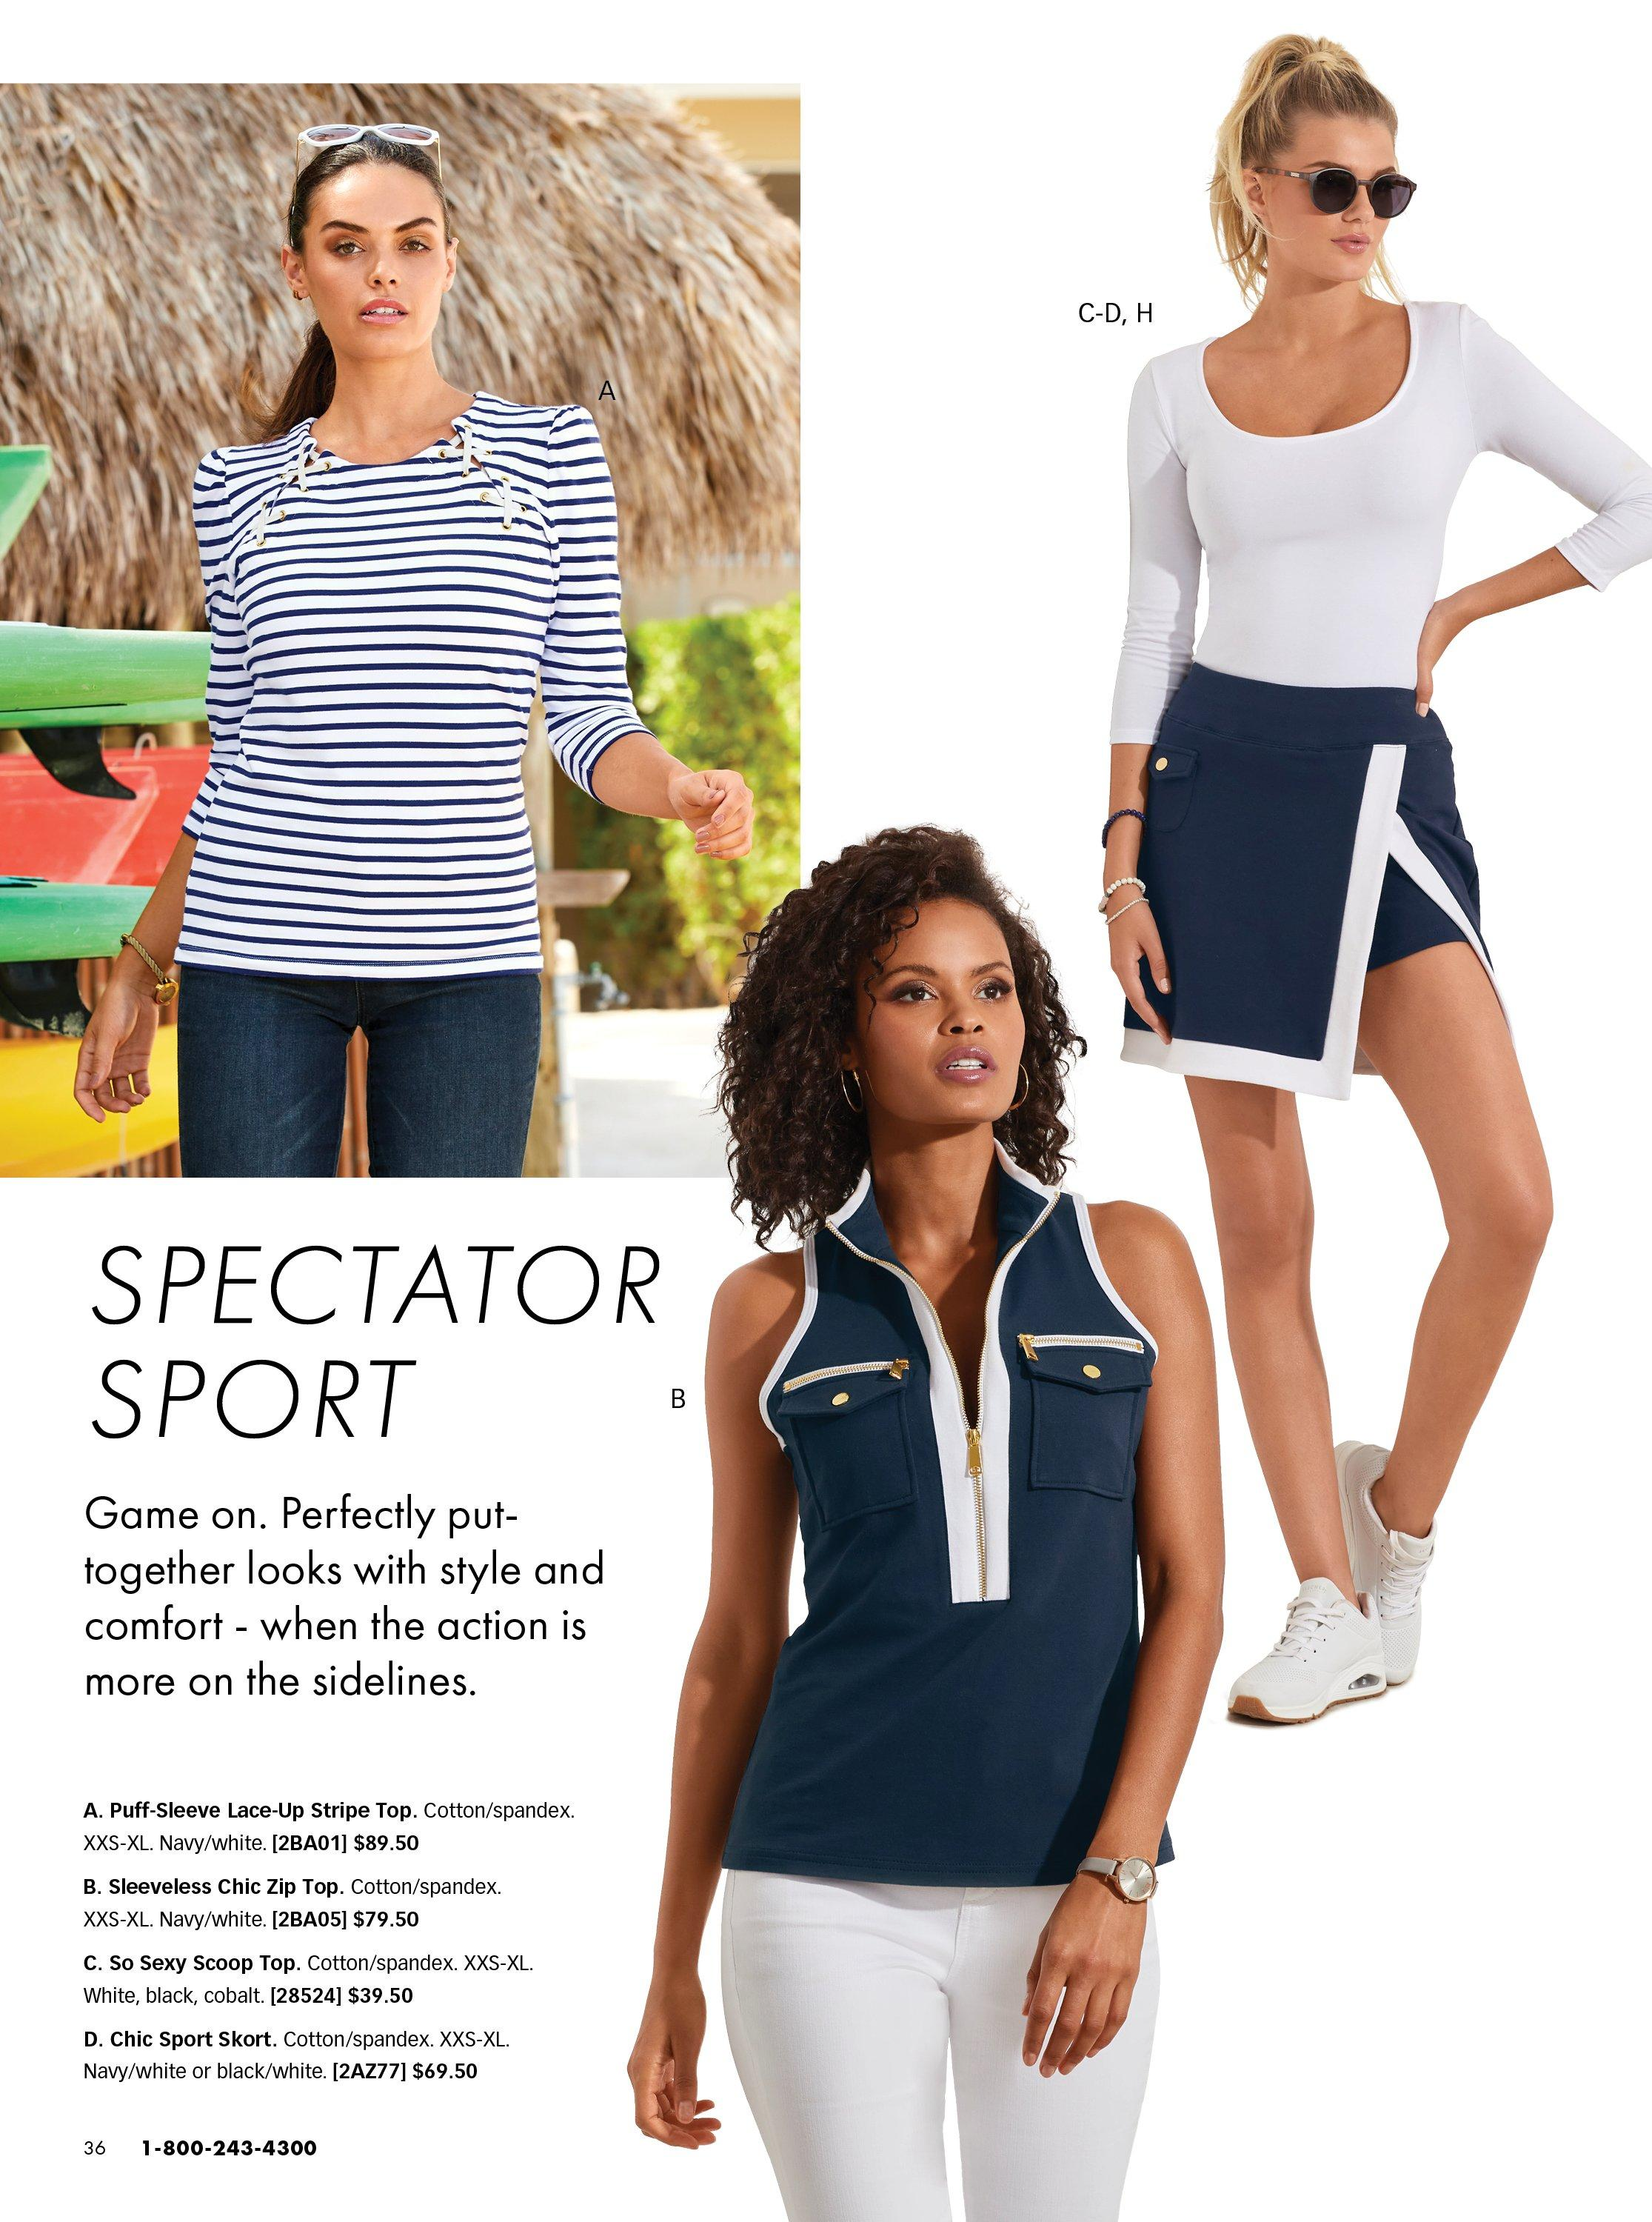 left model wearing a blue and white striped long sleeve top and jeans. middle model wearing a navy sleeveless sport zip top and white pants. right model wearing a white scoop neck three-quarter sleeve top , navy and white sport skort, and white sneakers.